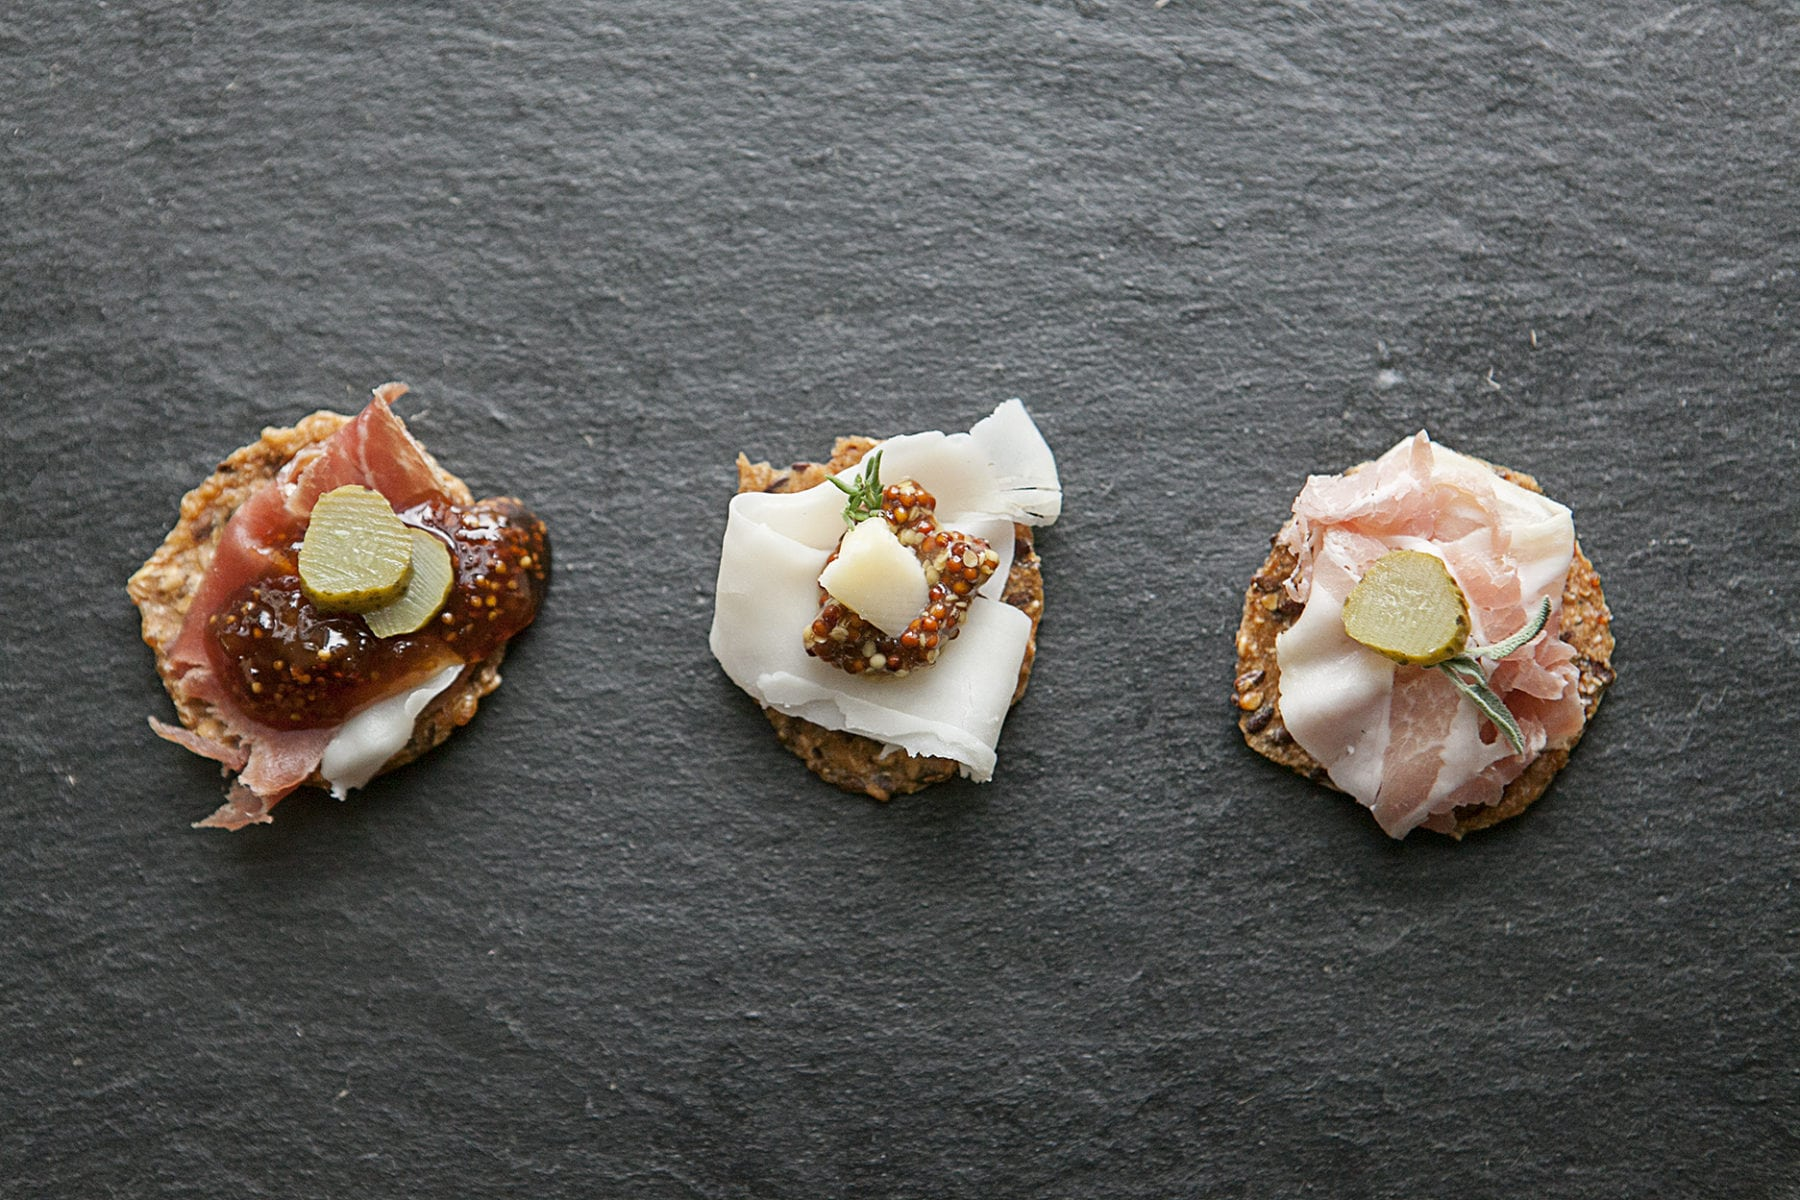 Curing Meats at Home: How to Make Lardo